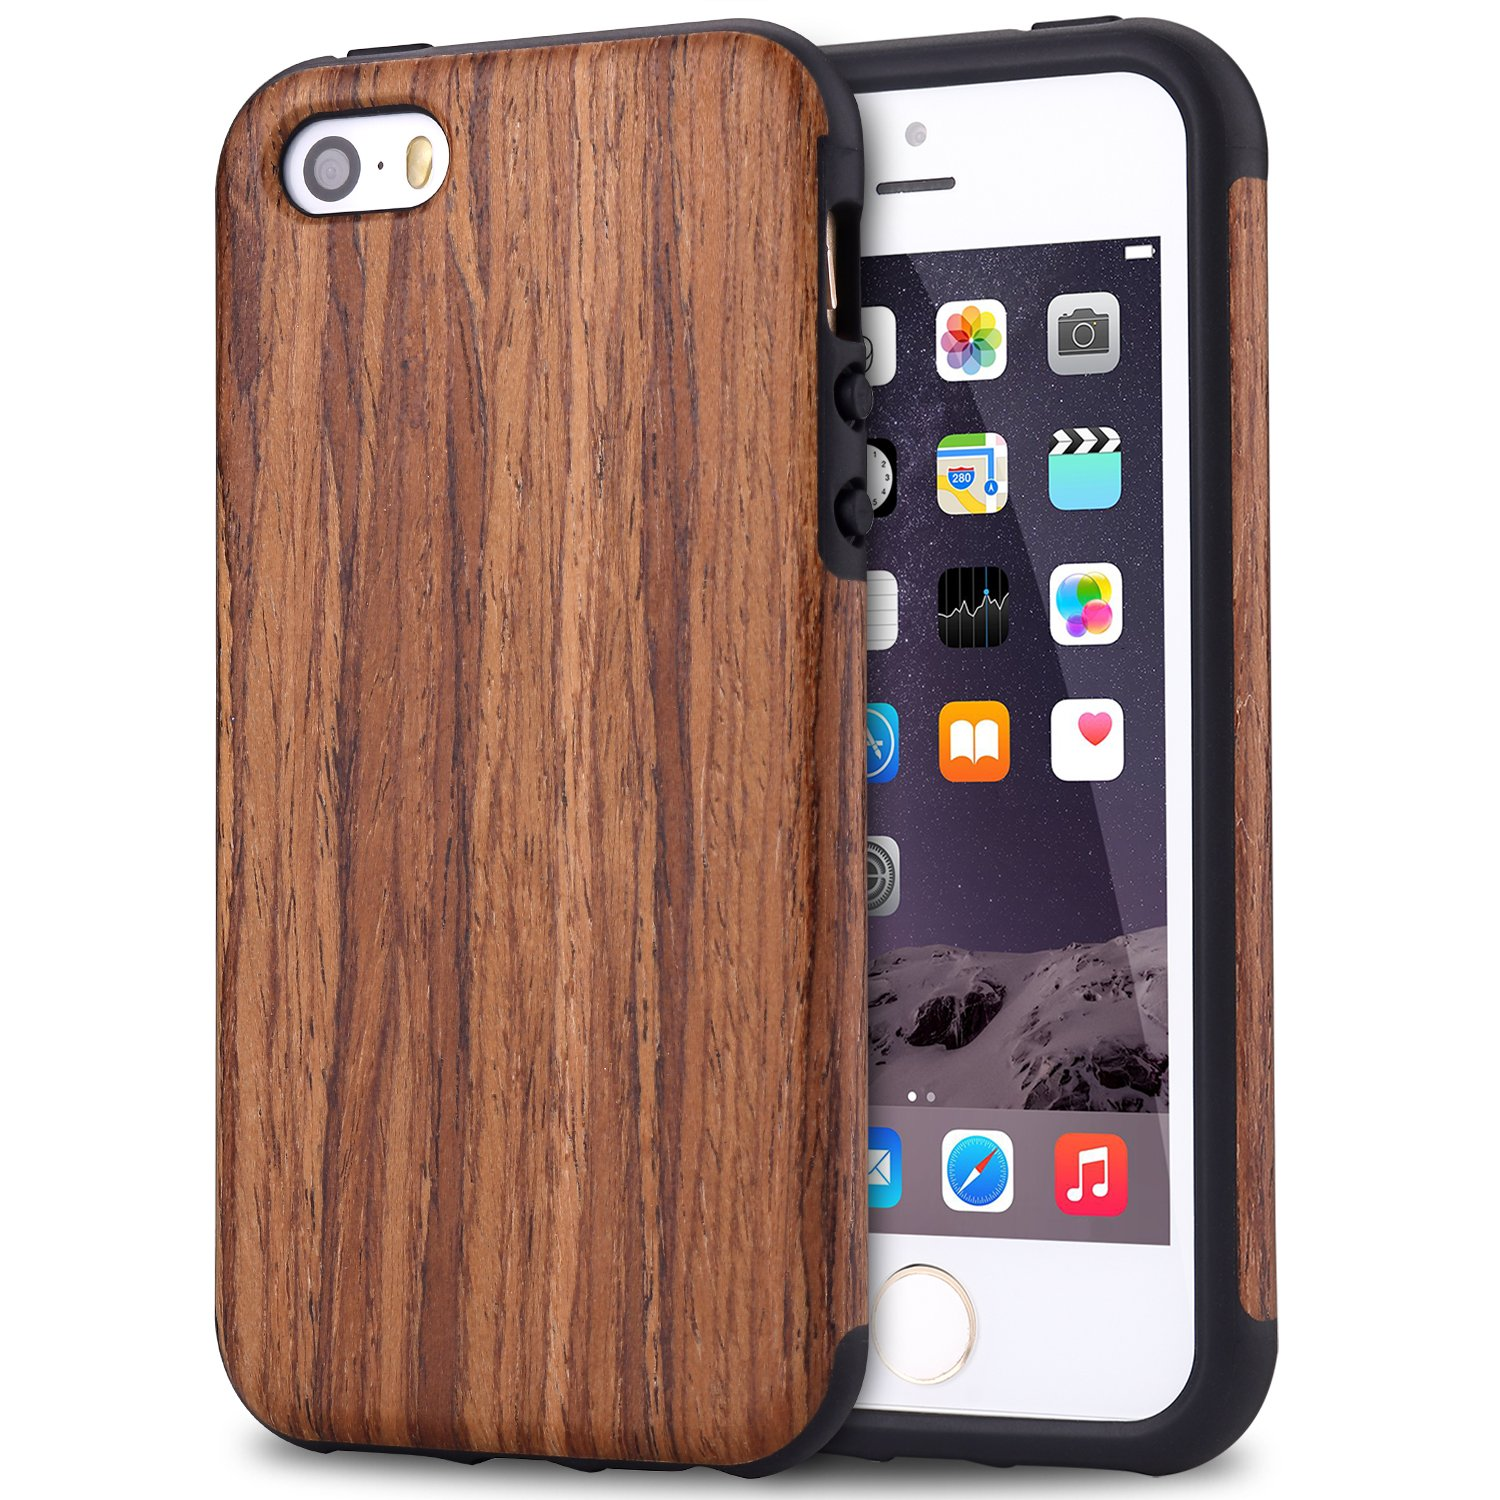 iphone 5s custodia in legno